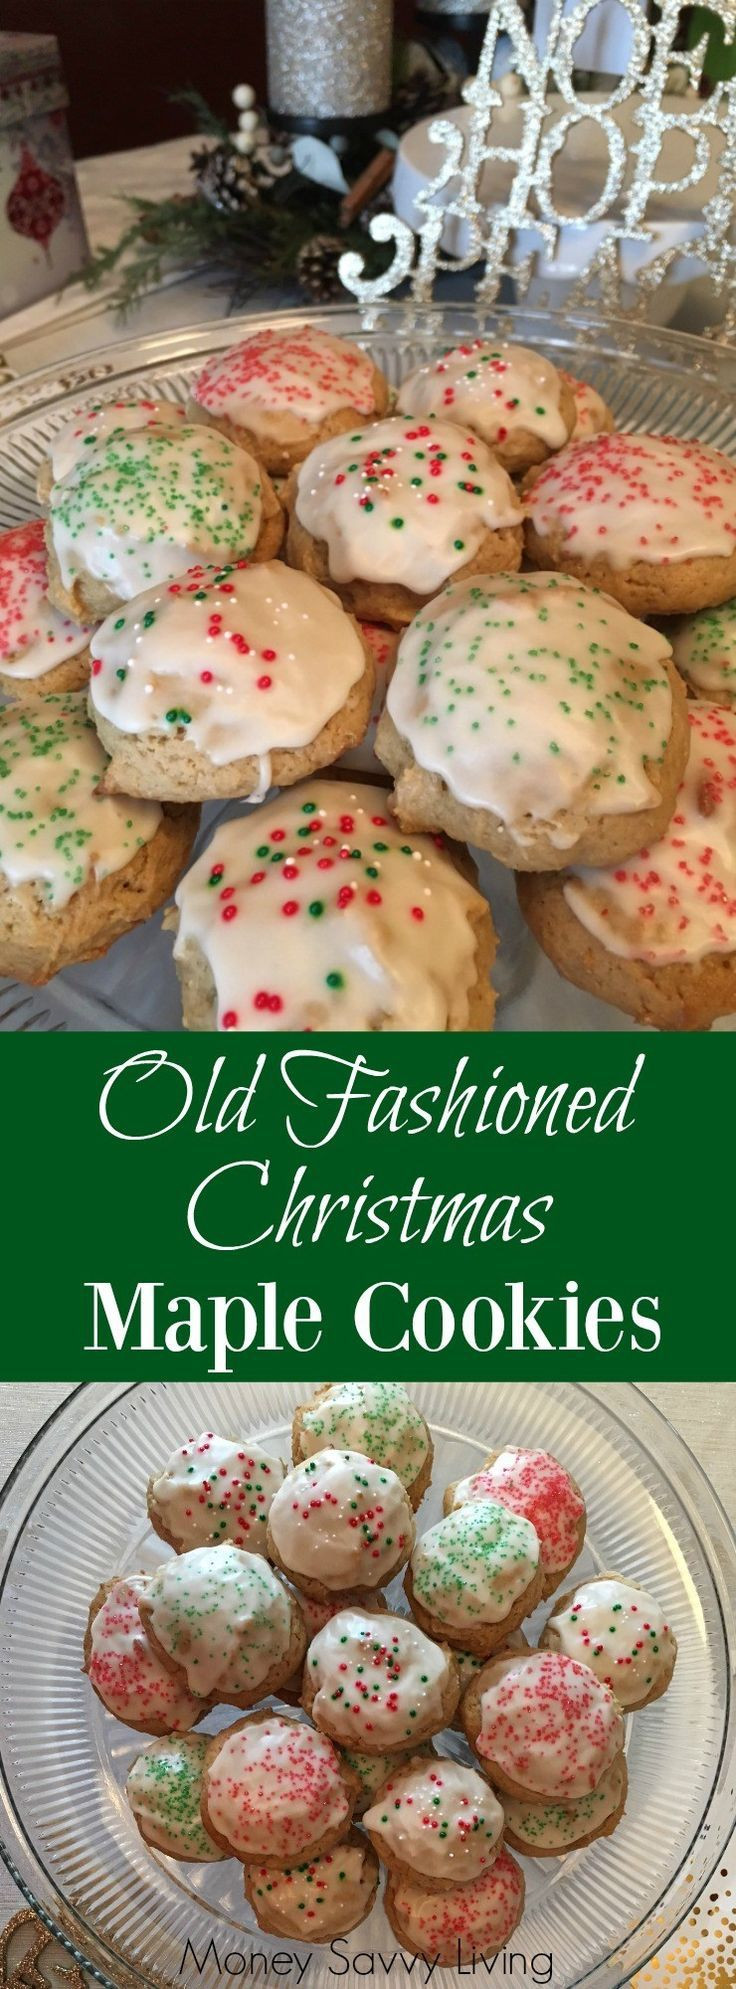 Old Fashioned Christmas Cookies  Best 25 Old fashioned christmas ideas on Pinterest